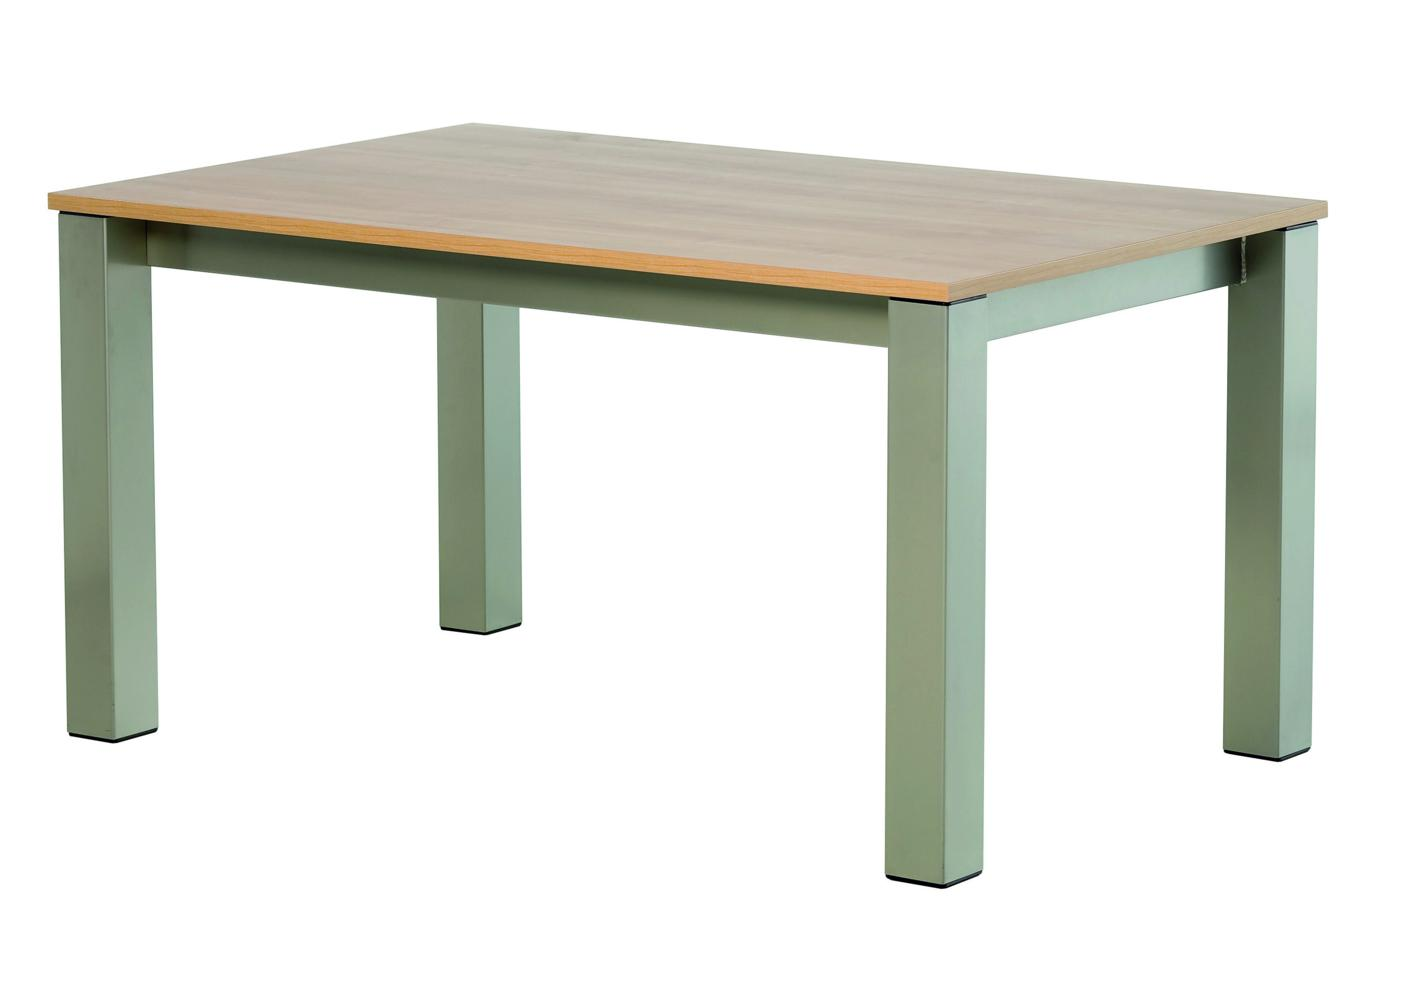 Table Allonge Papillon Table Longueur 150 Cm Hauteur 75 Pronfondeur 90 Cm Avec 1 Allonge Papillon De 90 Cm